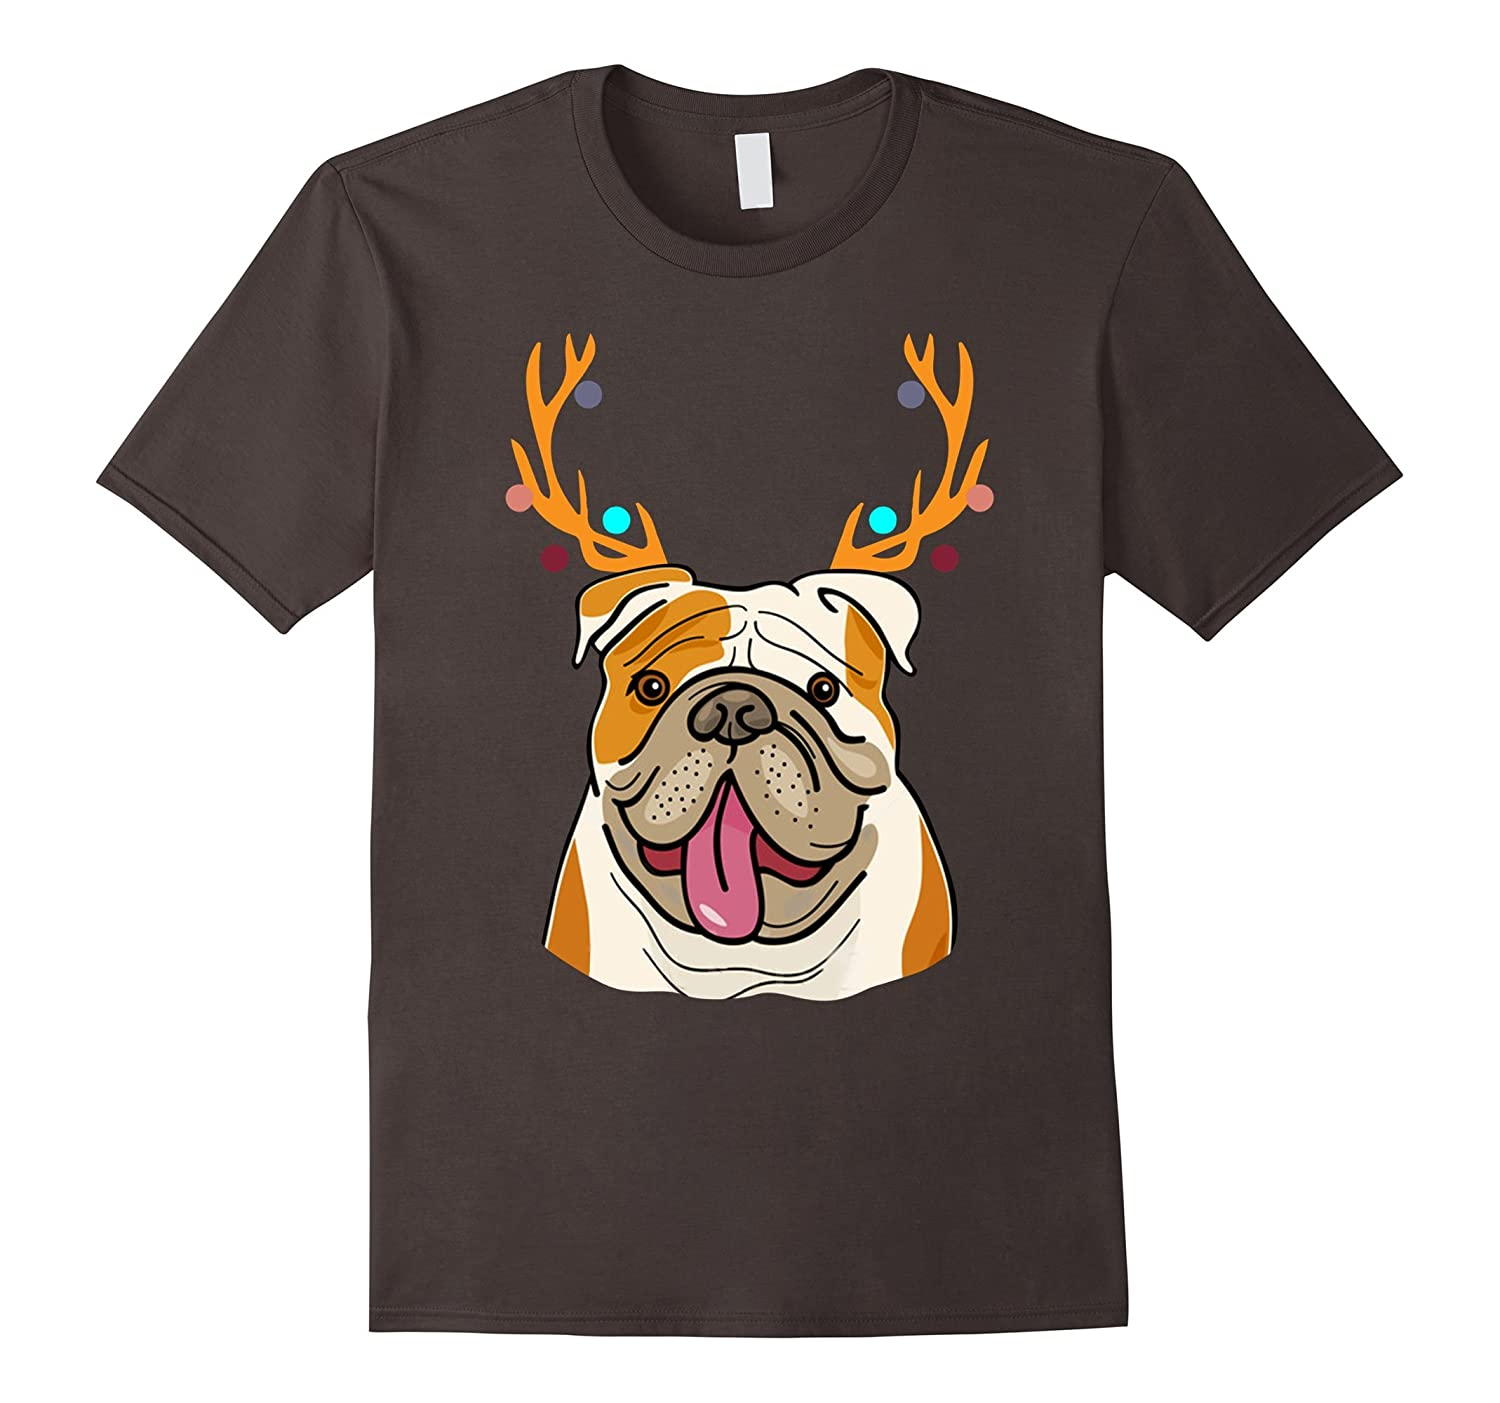 XMAS Funny Bulldogs with Antlers Christmas T Shirt Xmas Tee-TD